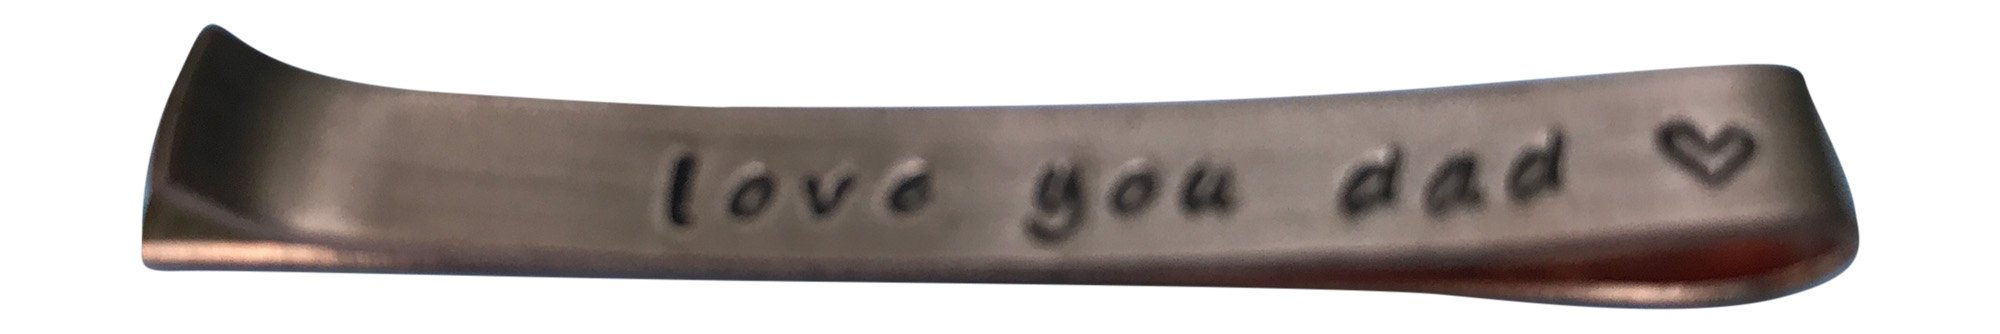 Hand Trades Love You dad Tie Clip - Copper - Wedding Gift-Groomsman Gift- Father of The Bride-Gifts for dad